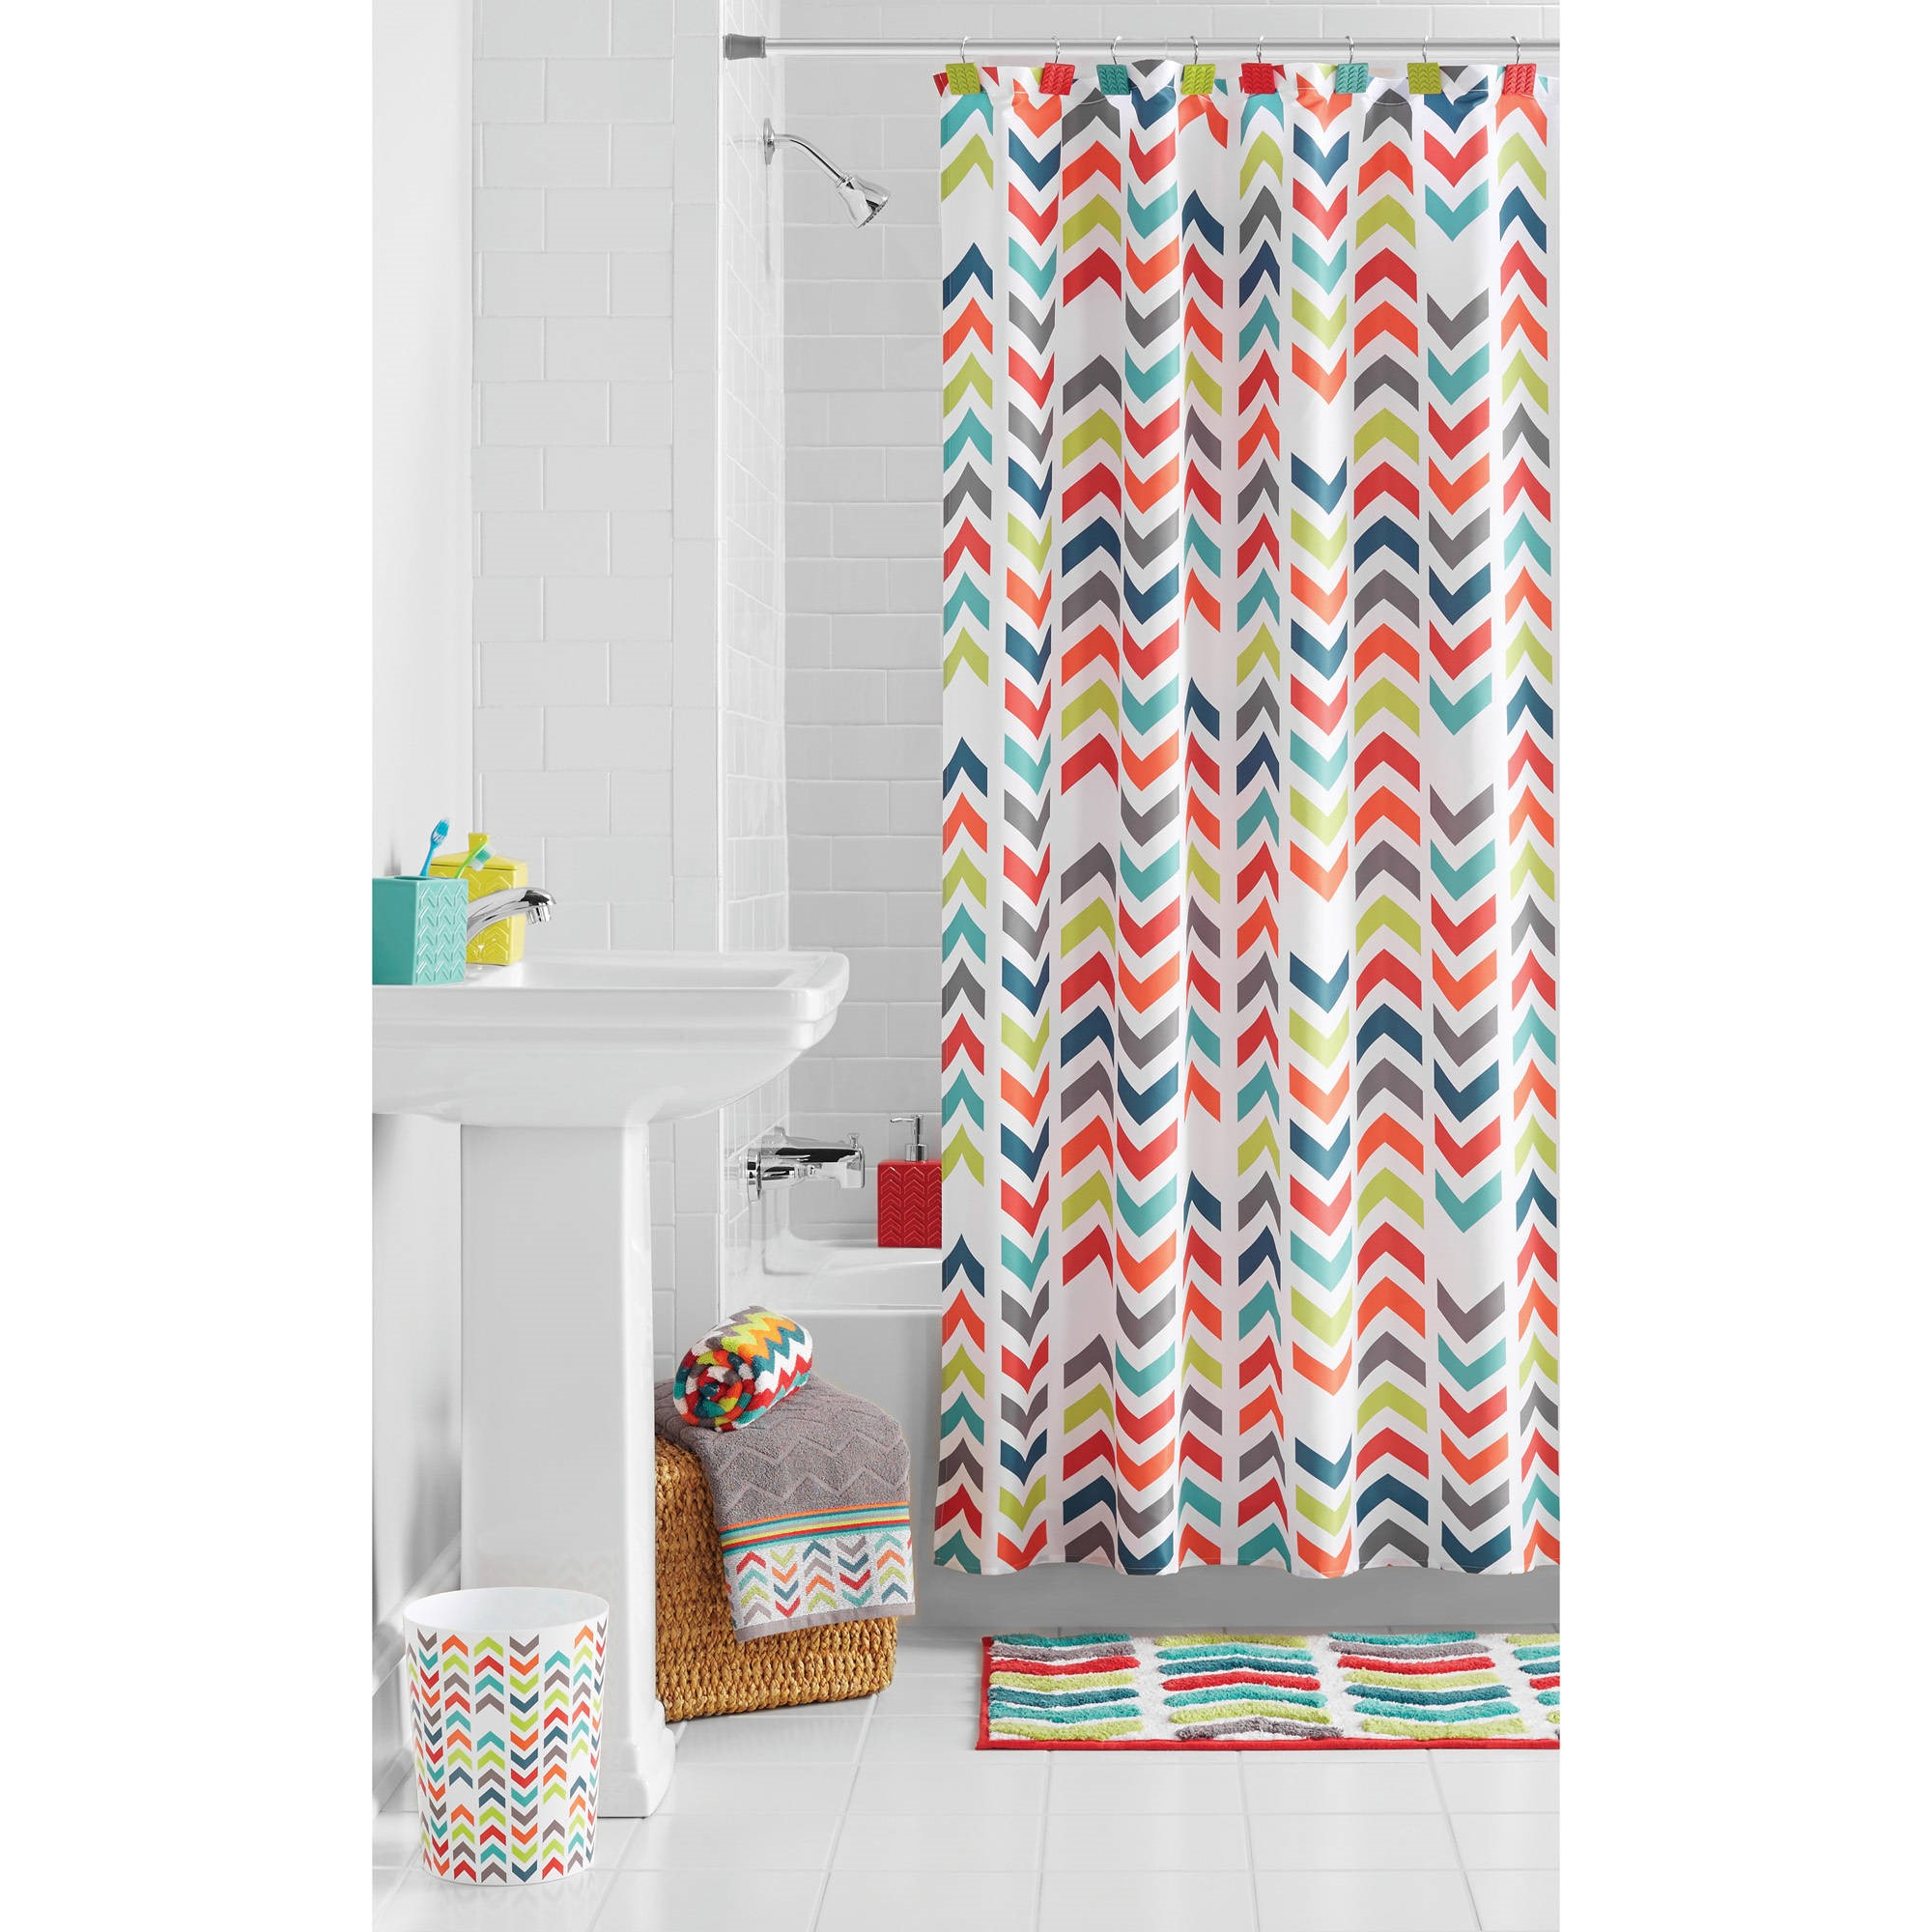 with curtains counter teen unique curtain red picture brown best in deco fascinating orange b wall room wooden owls top combined interior shower and white vanity the your toilet blue art sweeten